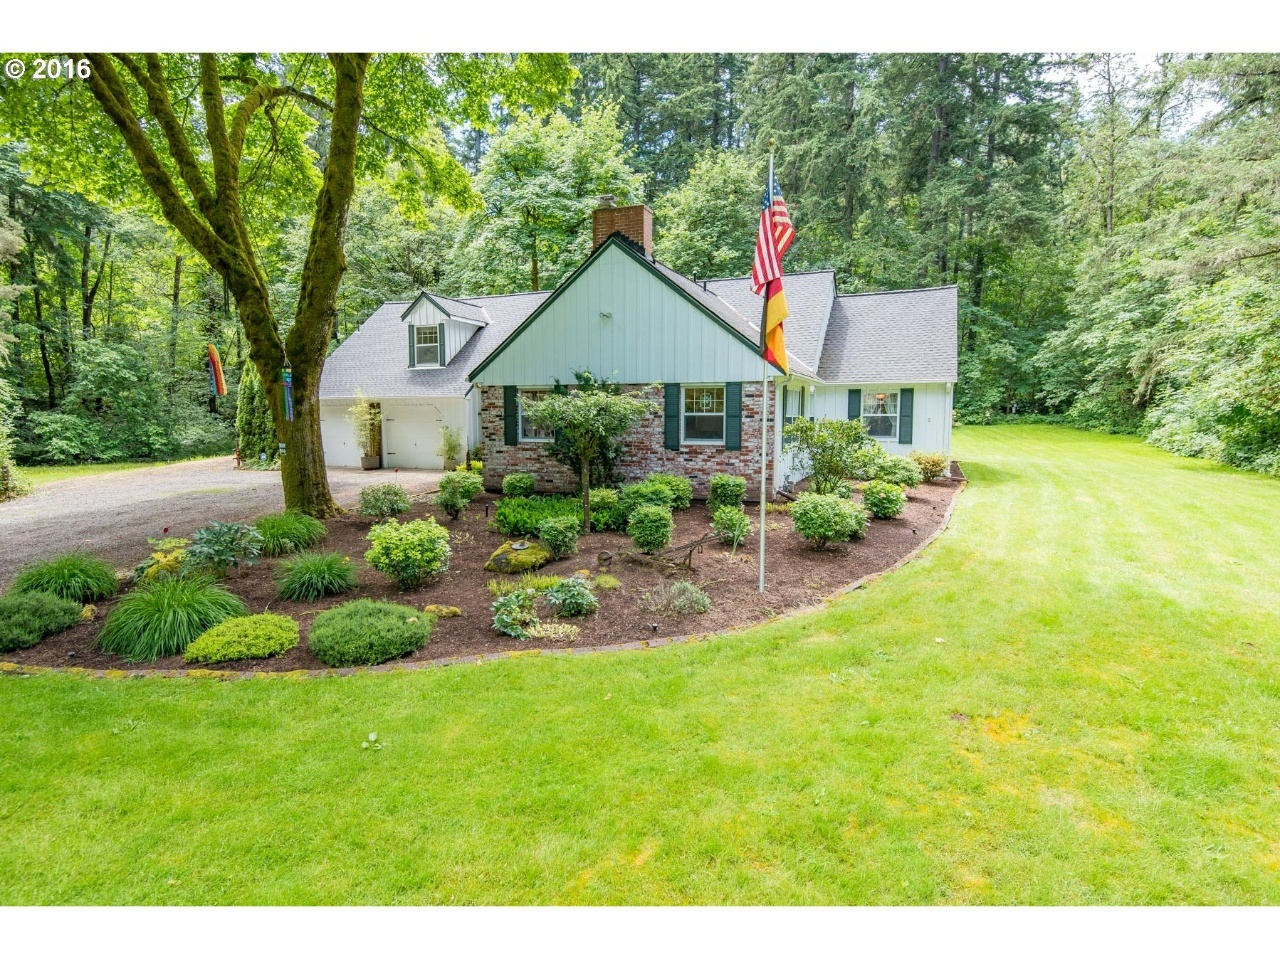 19830 SW Celebrity St, Beaverton, OR 97078 | Zillow